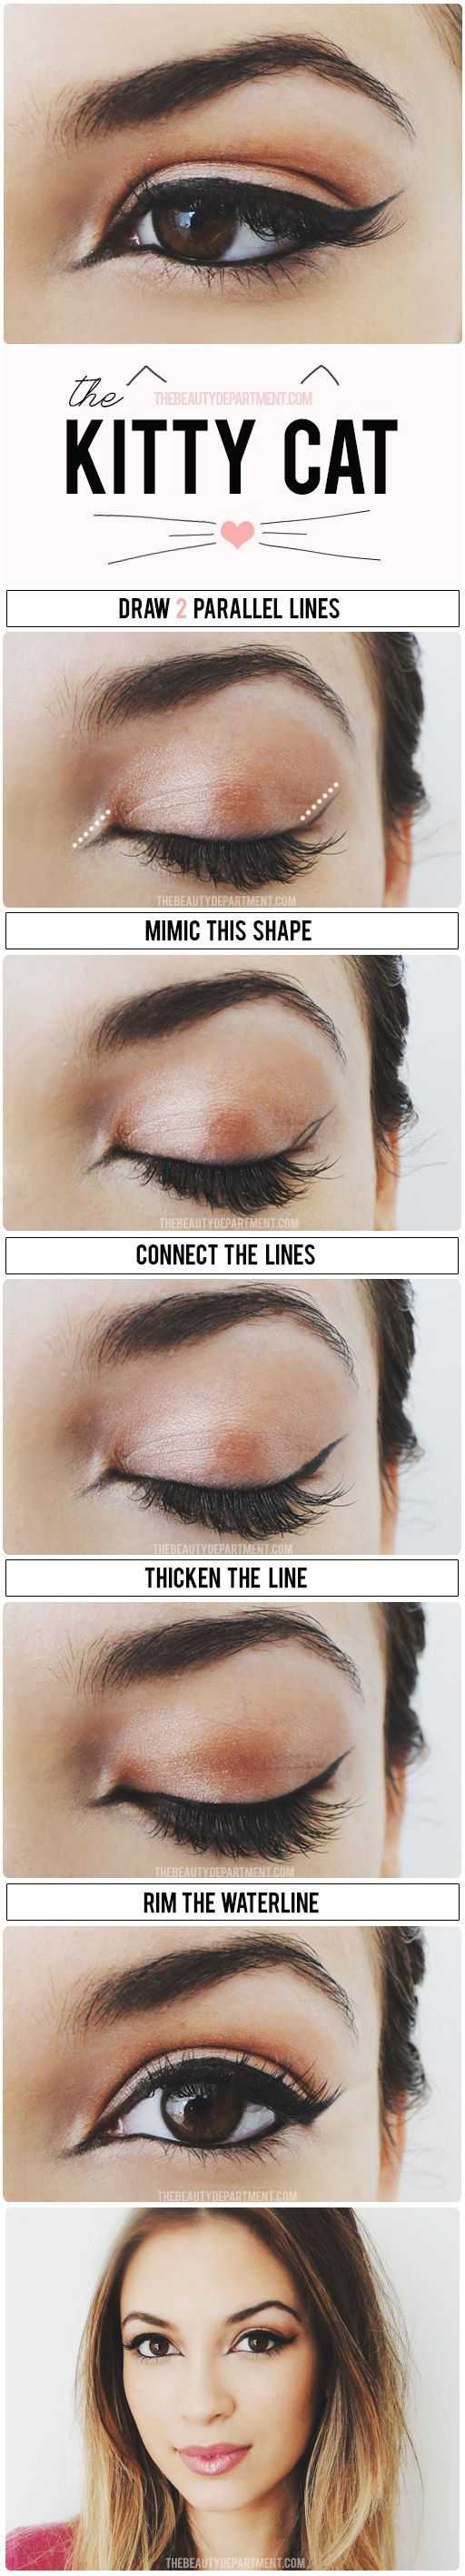 Stylize your Cat Eye!